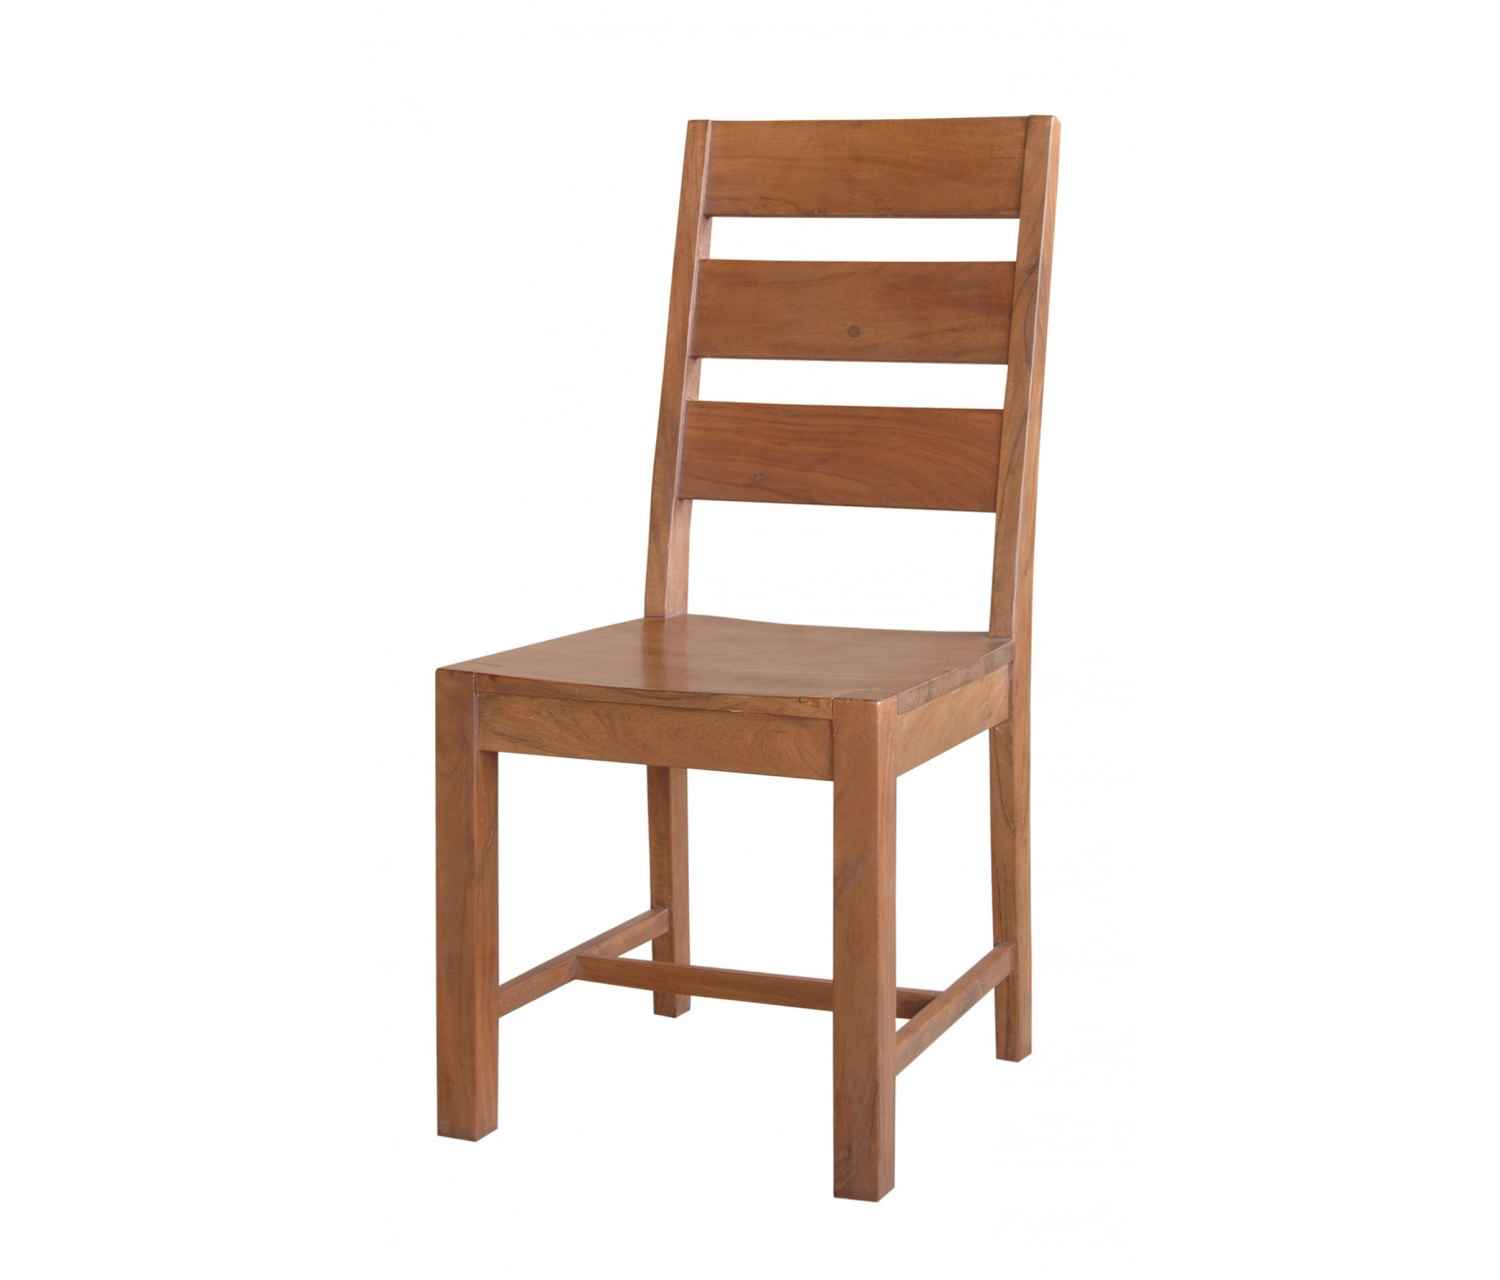 Simple Wooden Dining Chair Plans